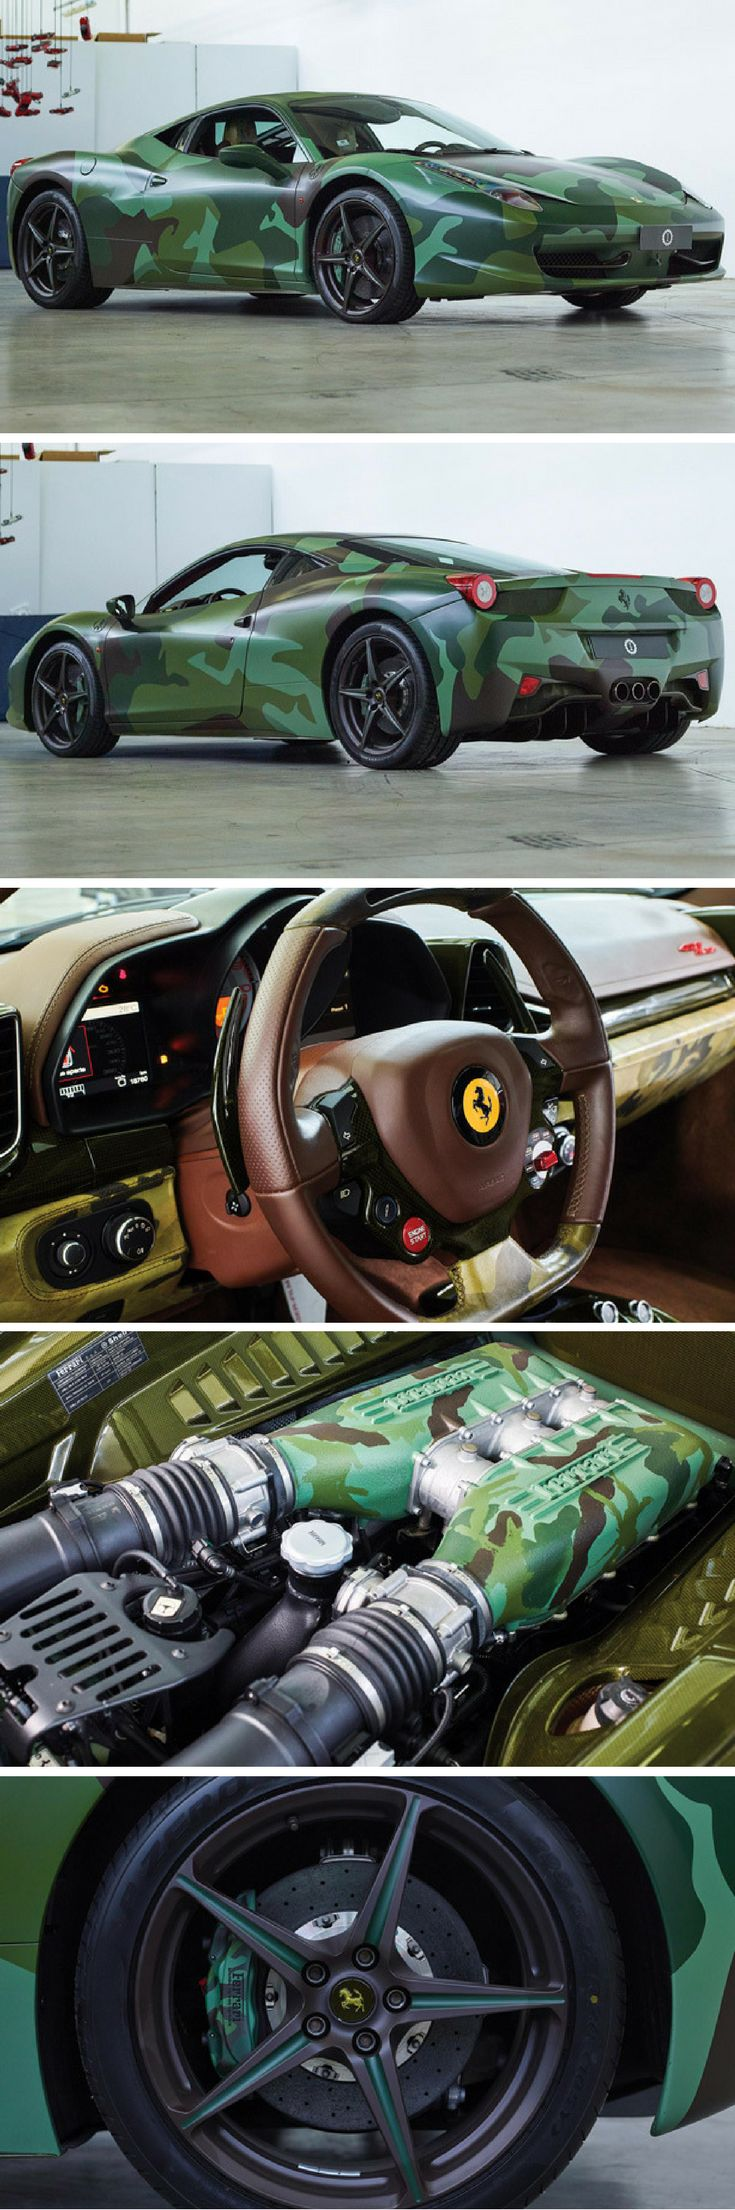 A Ferrari 458 with a camo paint job is up for auction https://www.amazon.co.uk/Baby-Car-Mirror-Shatterproof-Installation/dp/B06XHG6SSY